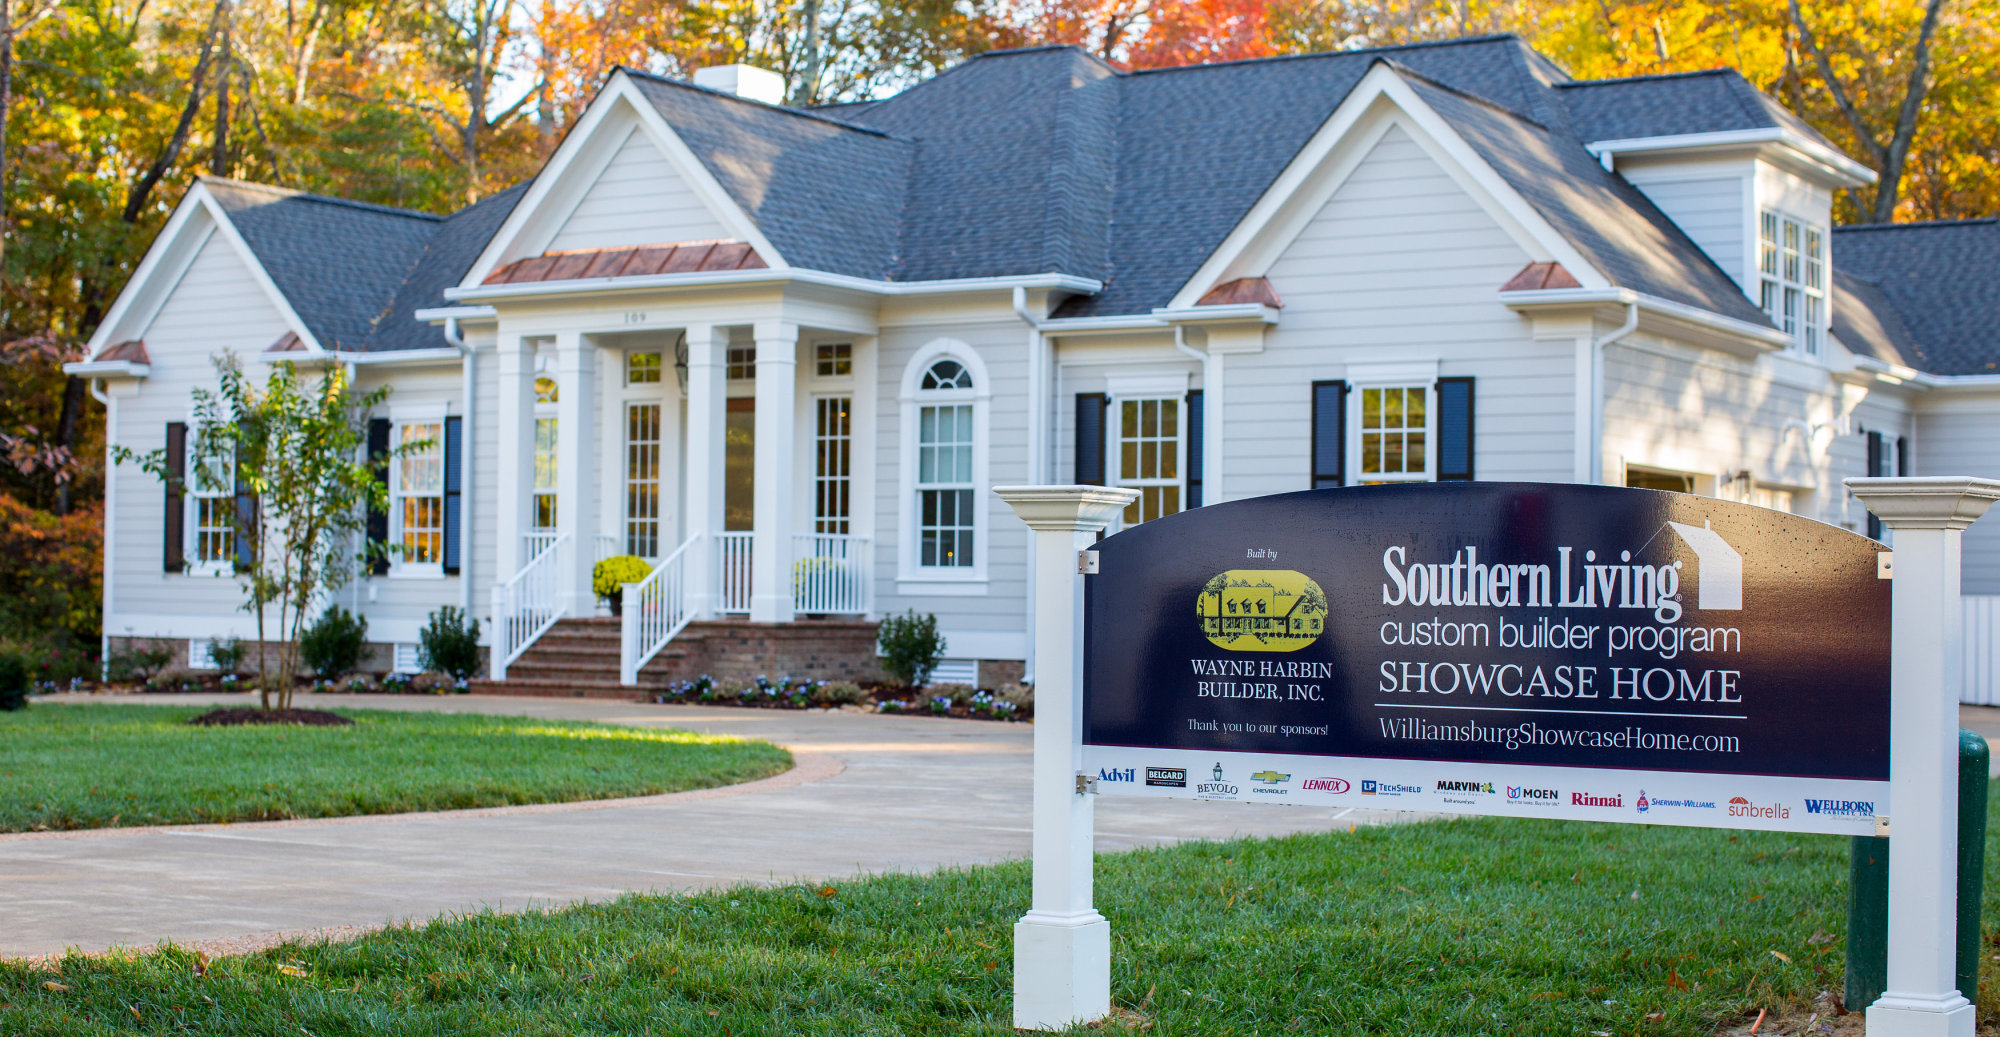 Liz moore associates teams with local builder to host Southern living builders